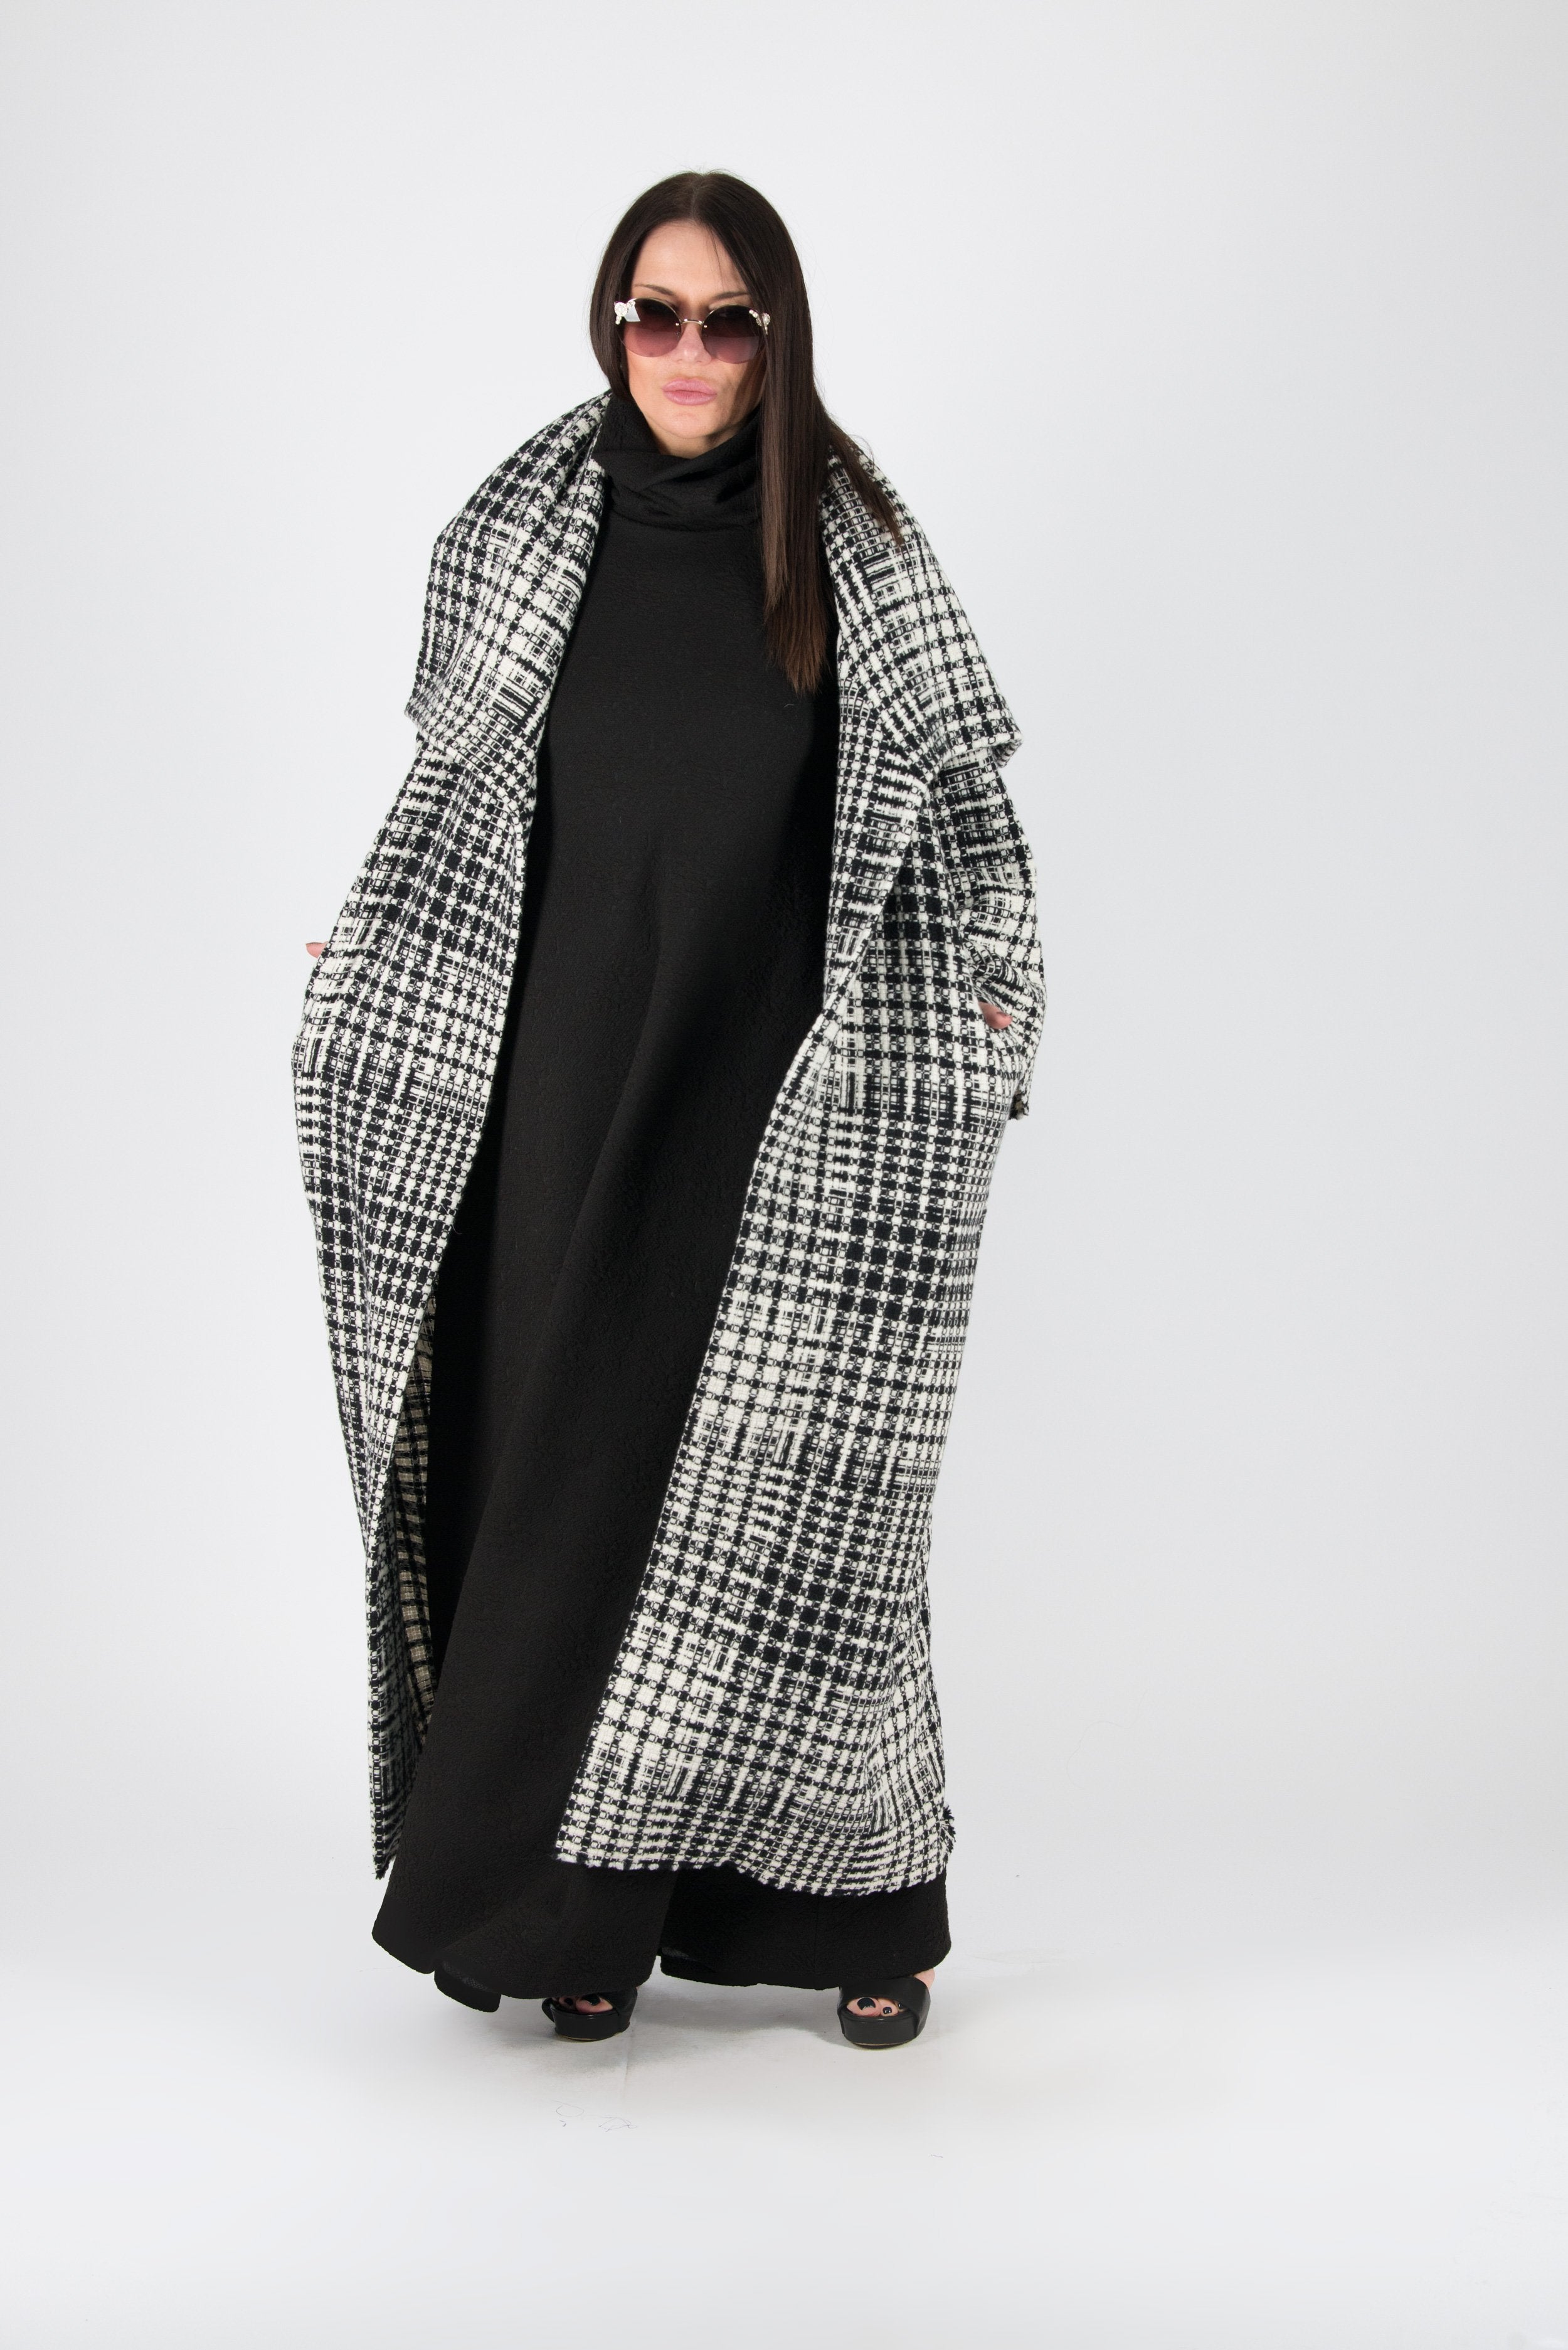 White Shepherds Plaid Wool Winter Coat, Coats